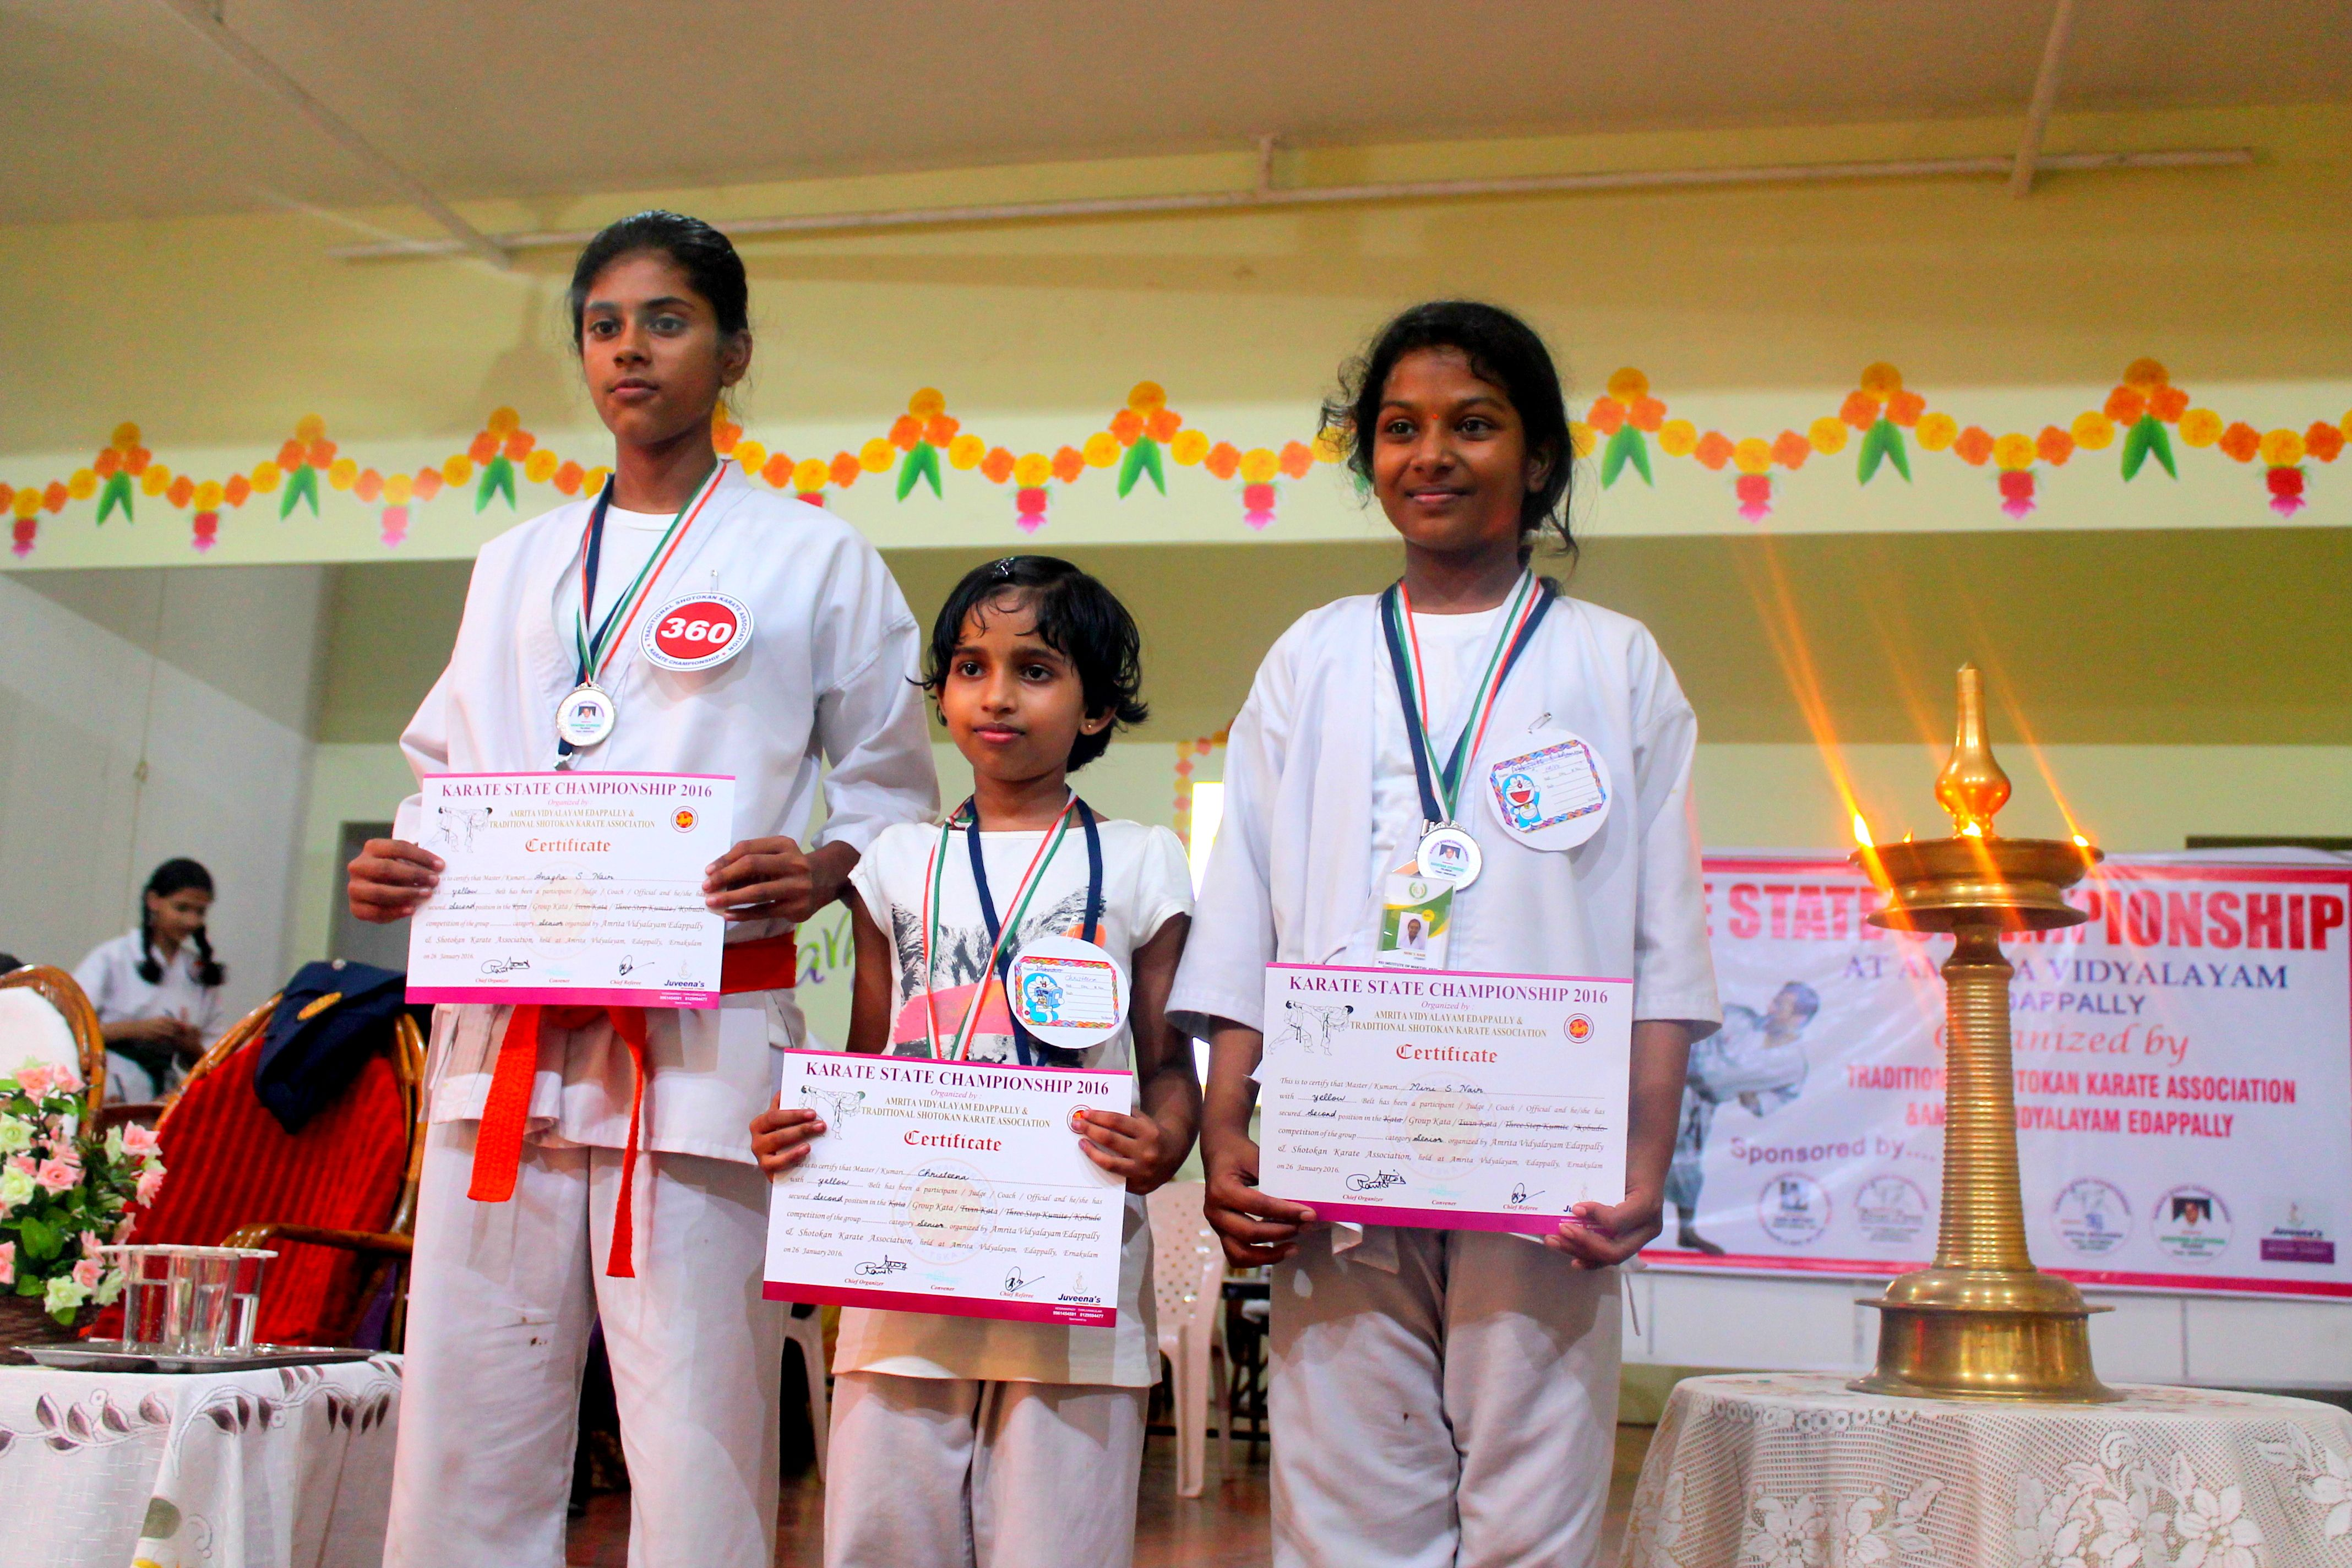 Silver Medal Awarding to Mini, Anagha, Christeena